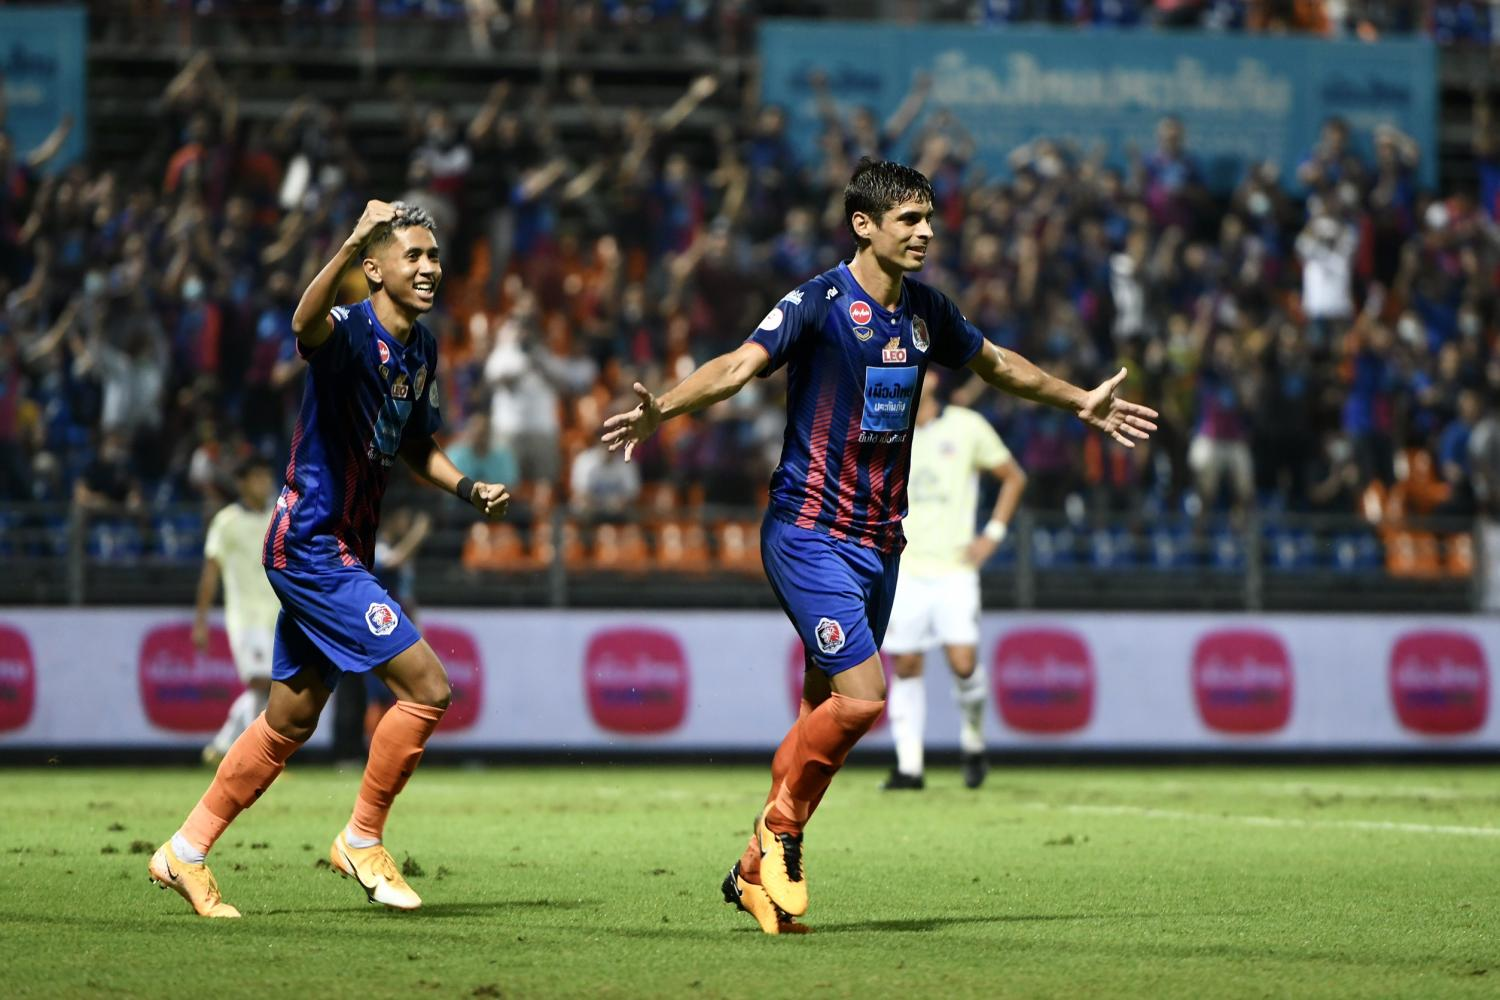 Port's Sergio Suarez celebrates scoring against Suphanburi last night.